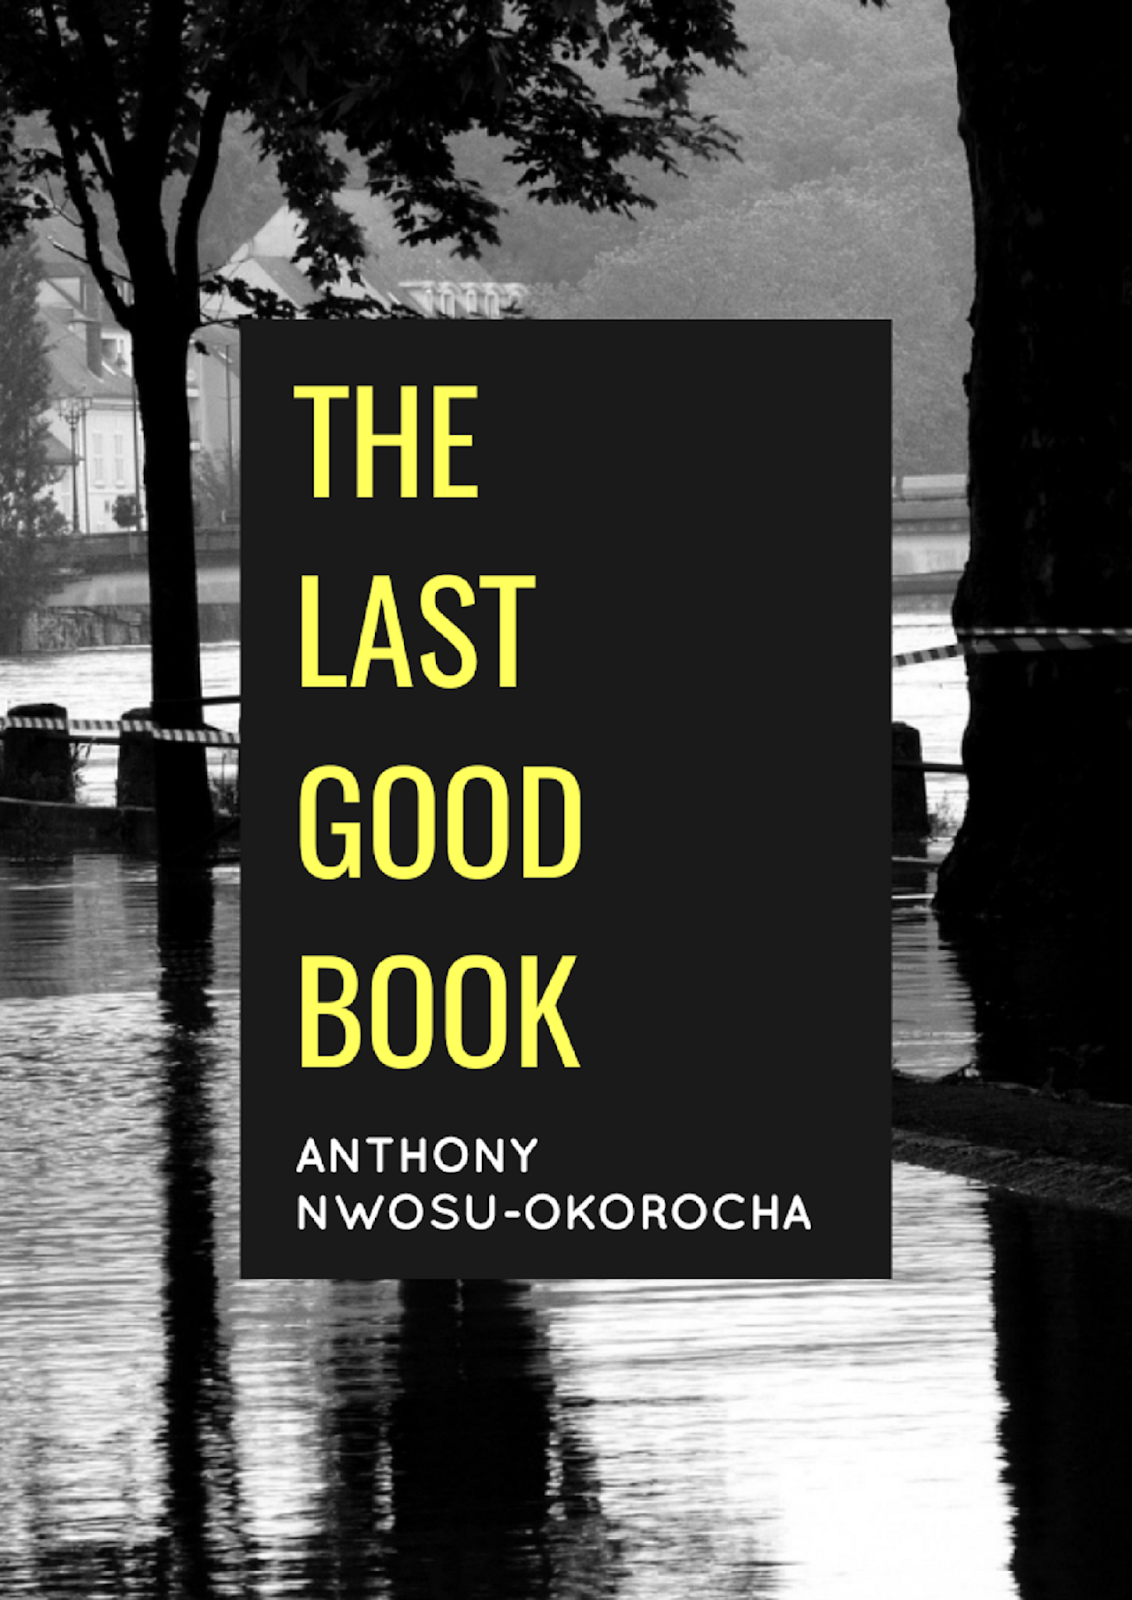 The Last Good Book by Anthony Nwosu-Okorocha